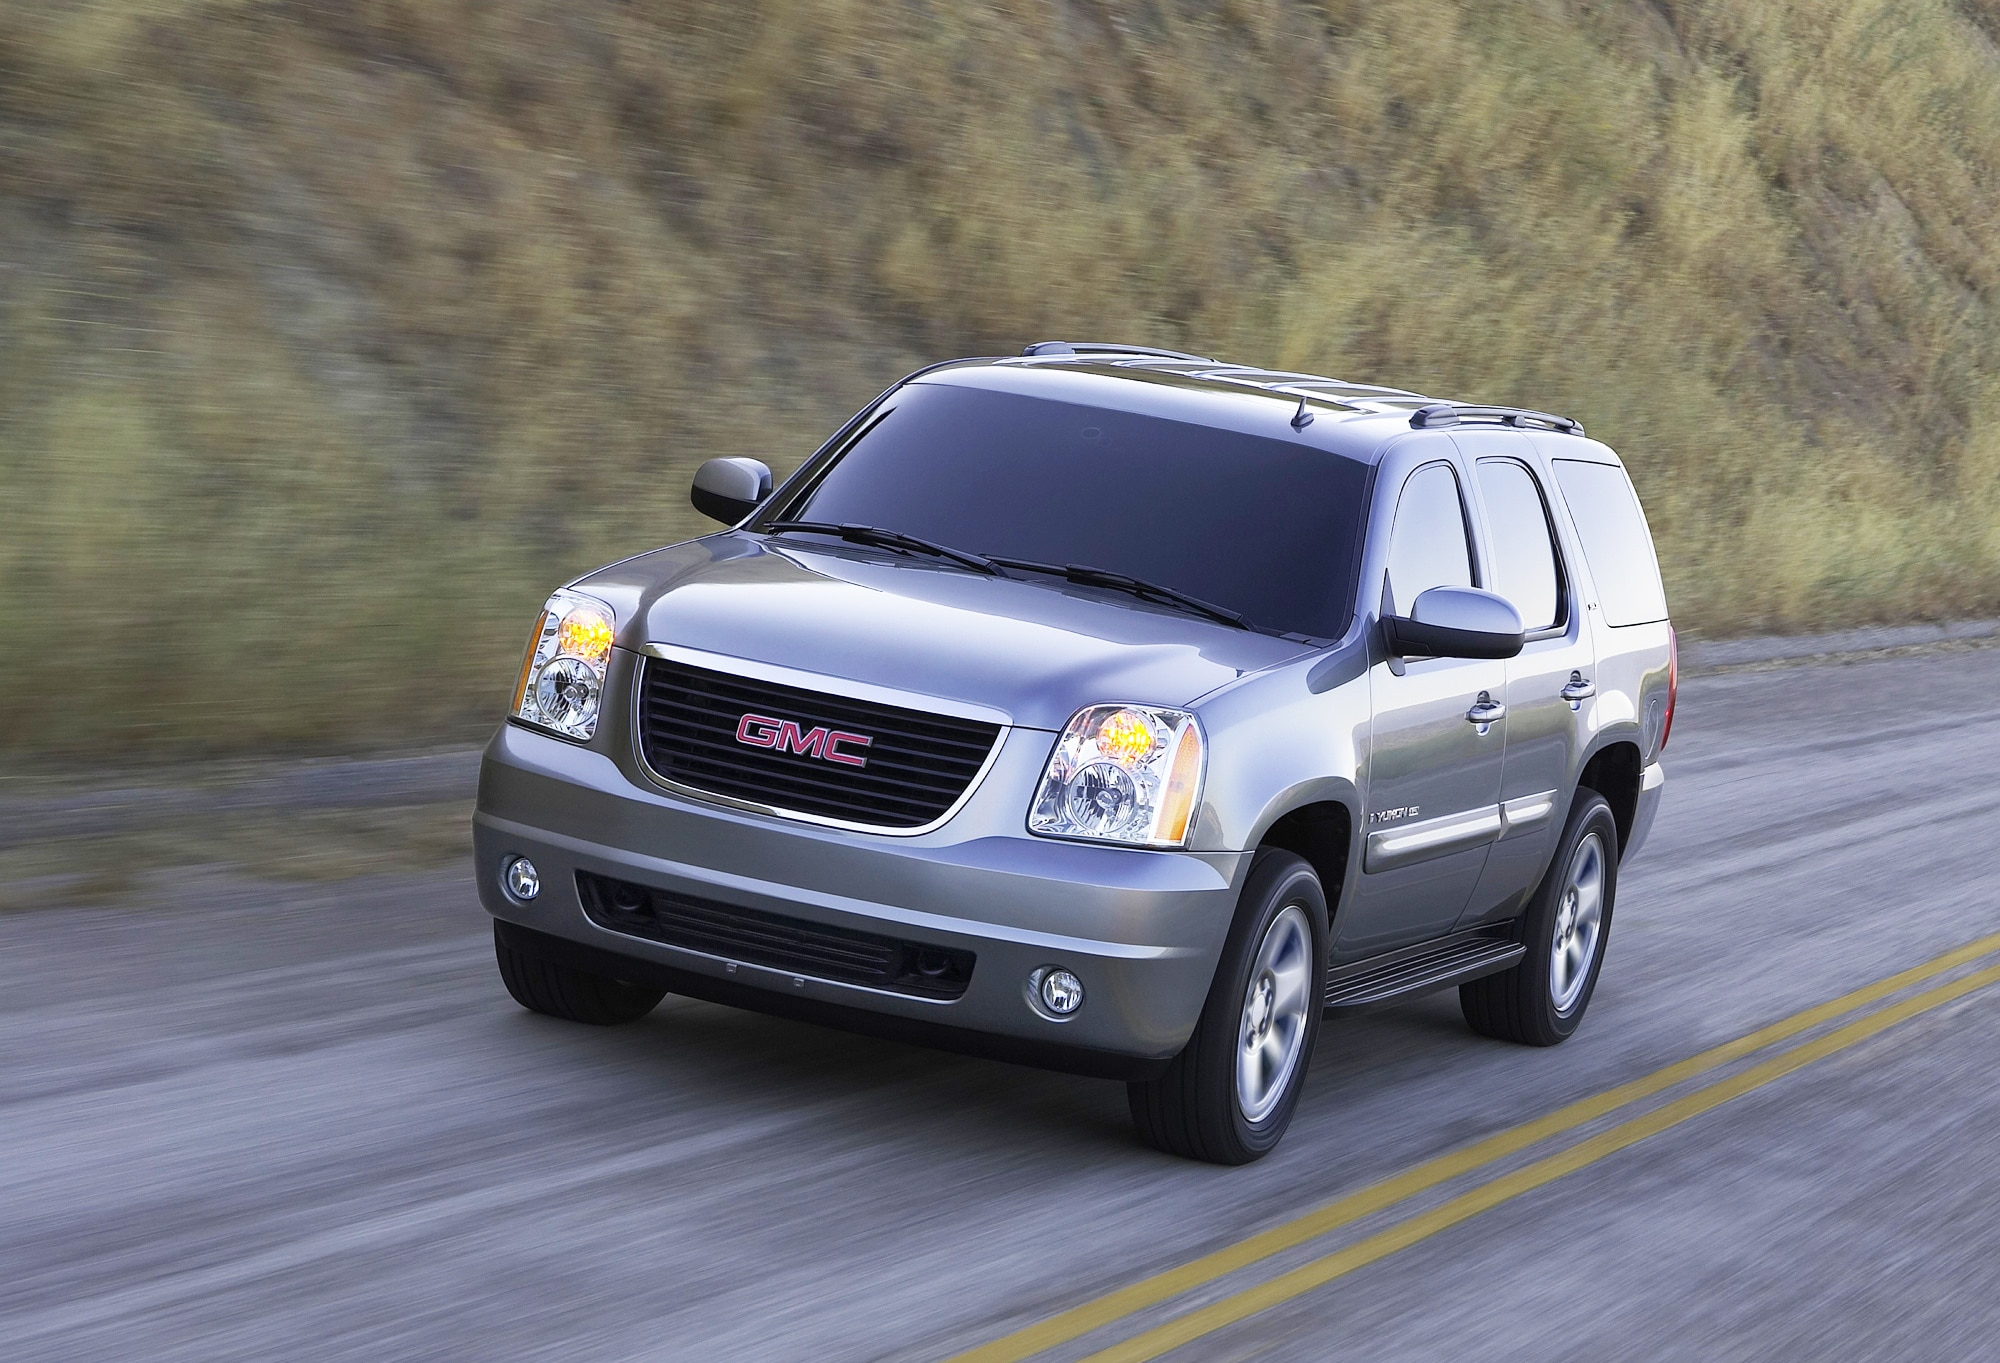 2009 gmc yukon denali hybrid 2009 new york auto show coverage new car reviews concept cars. Black Bedroom Furniture Sets. Home Design Ideas